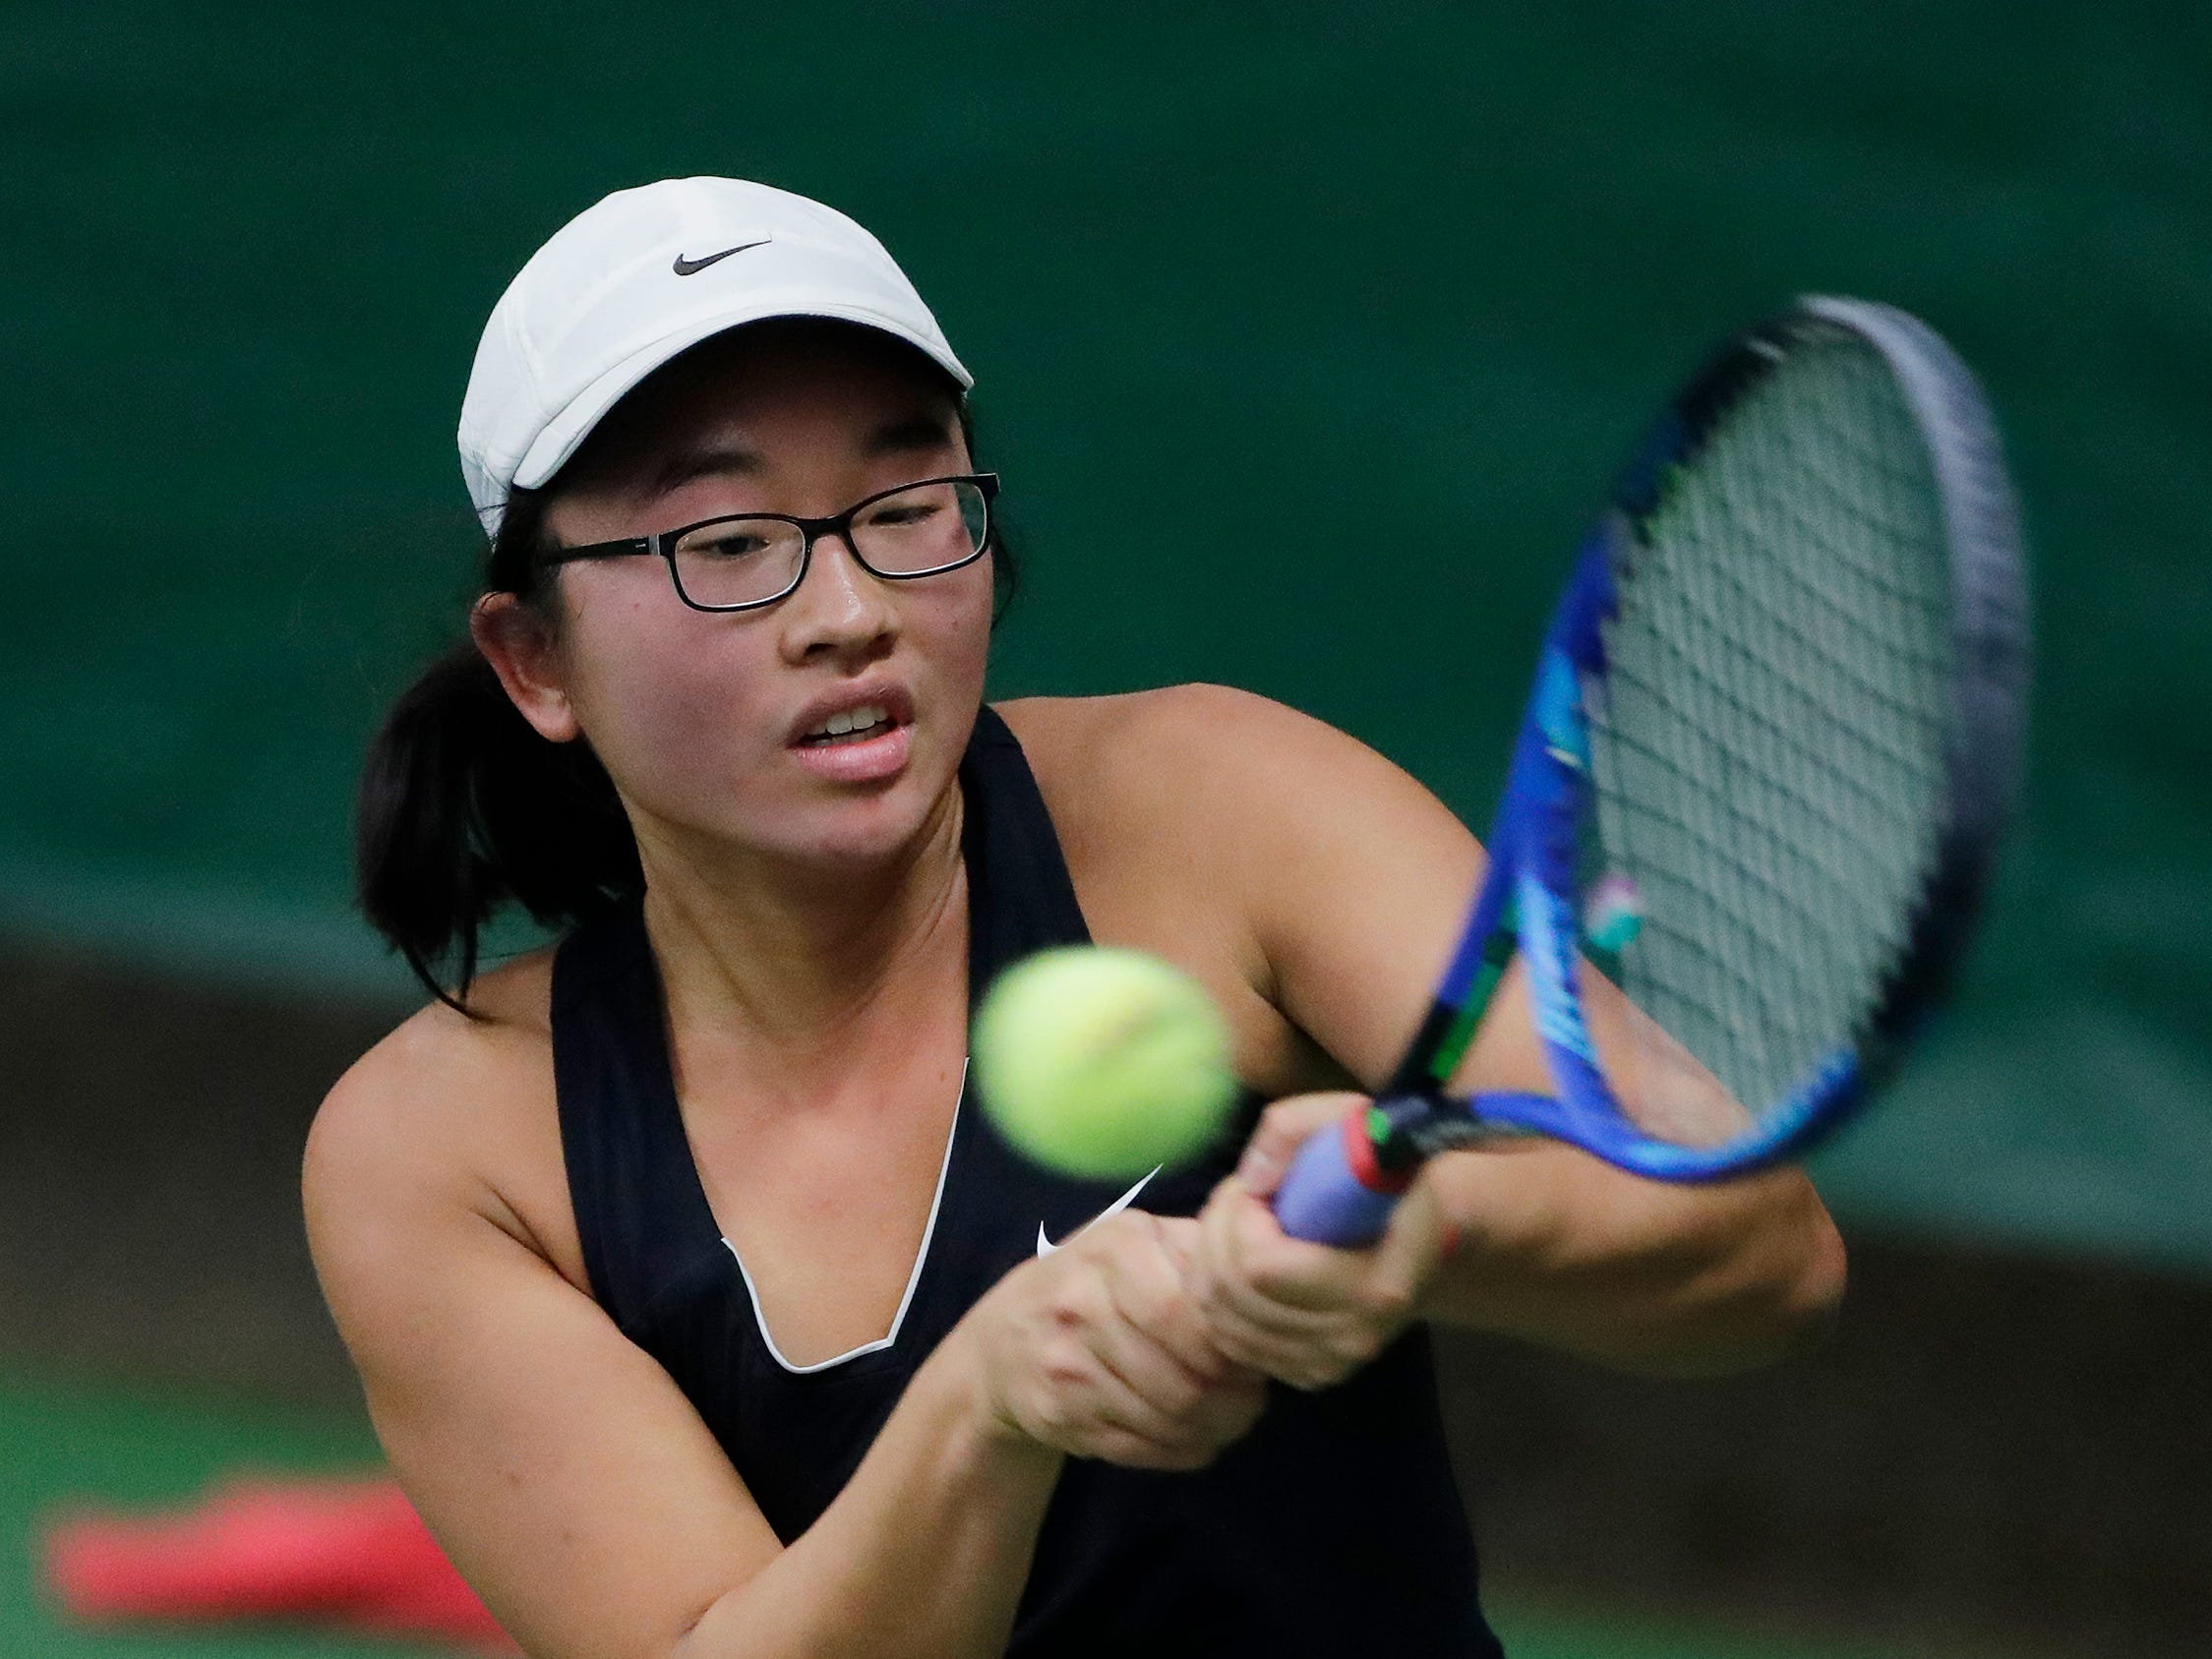 Stevens Point's Sabrina Tang hits a backhand in a Division 1 singles match at WIAA 2018 Girls State Tennis Tournament at Nielsen Tennis Stadium on Friday, October 12, 2018 in Madison, Wis.